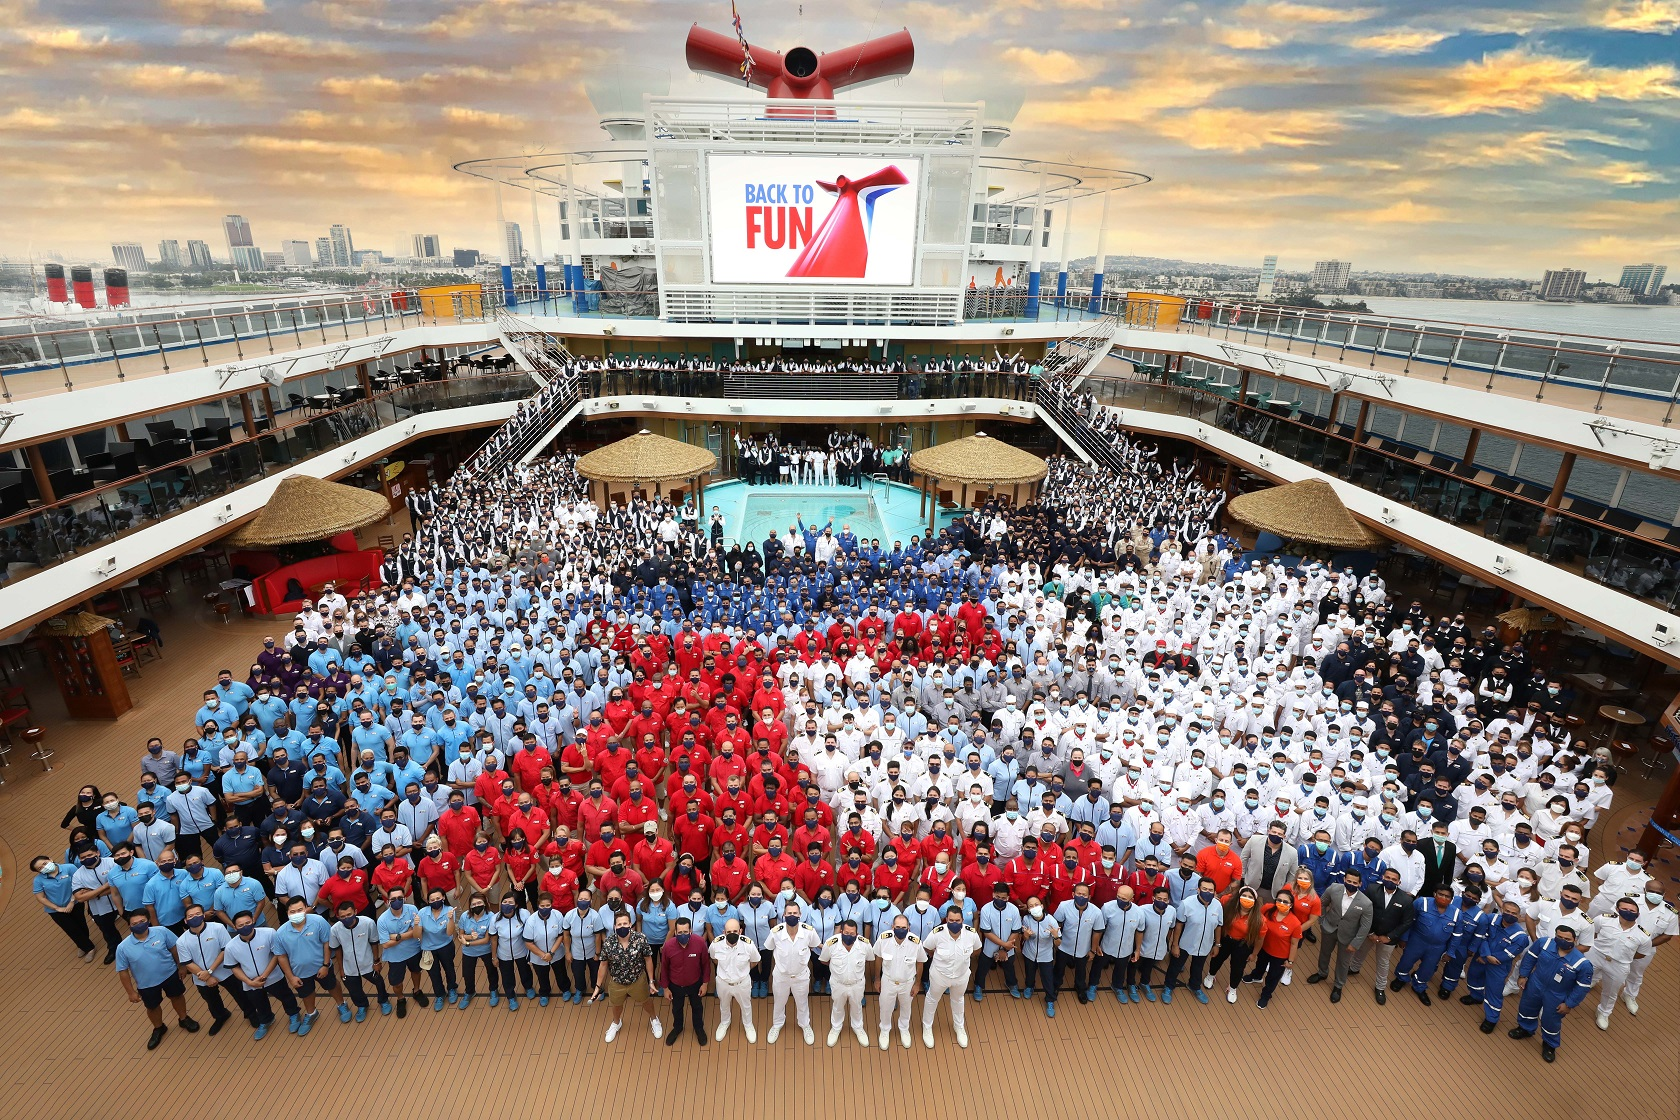 Carnival Cruise Line Sets Sail On First Cruise From California (August 2021)